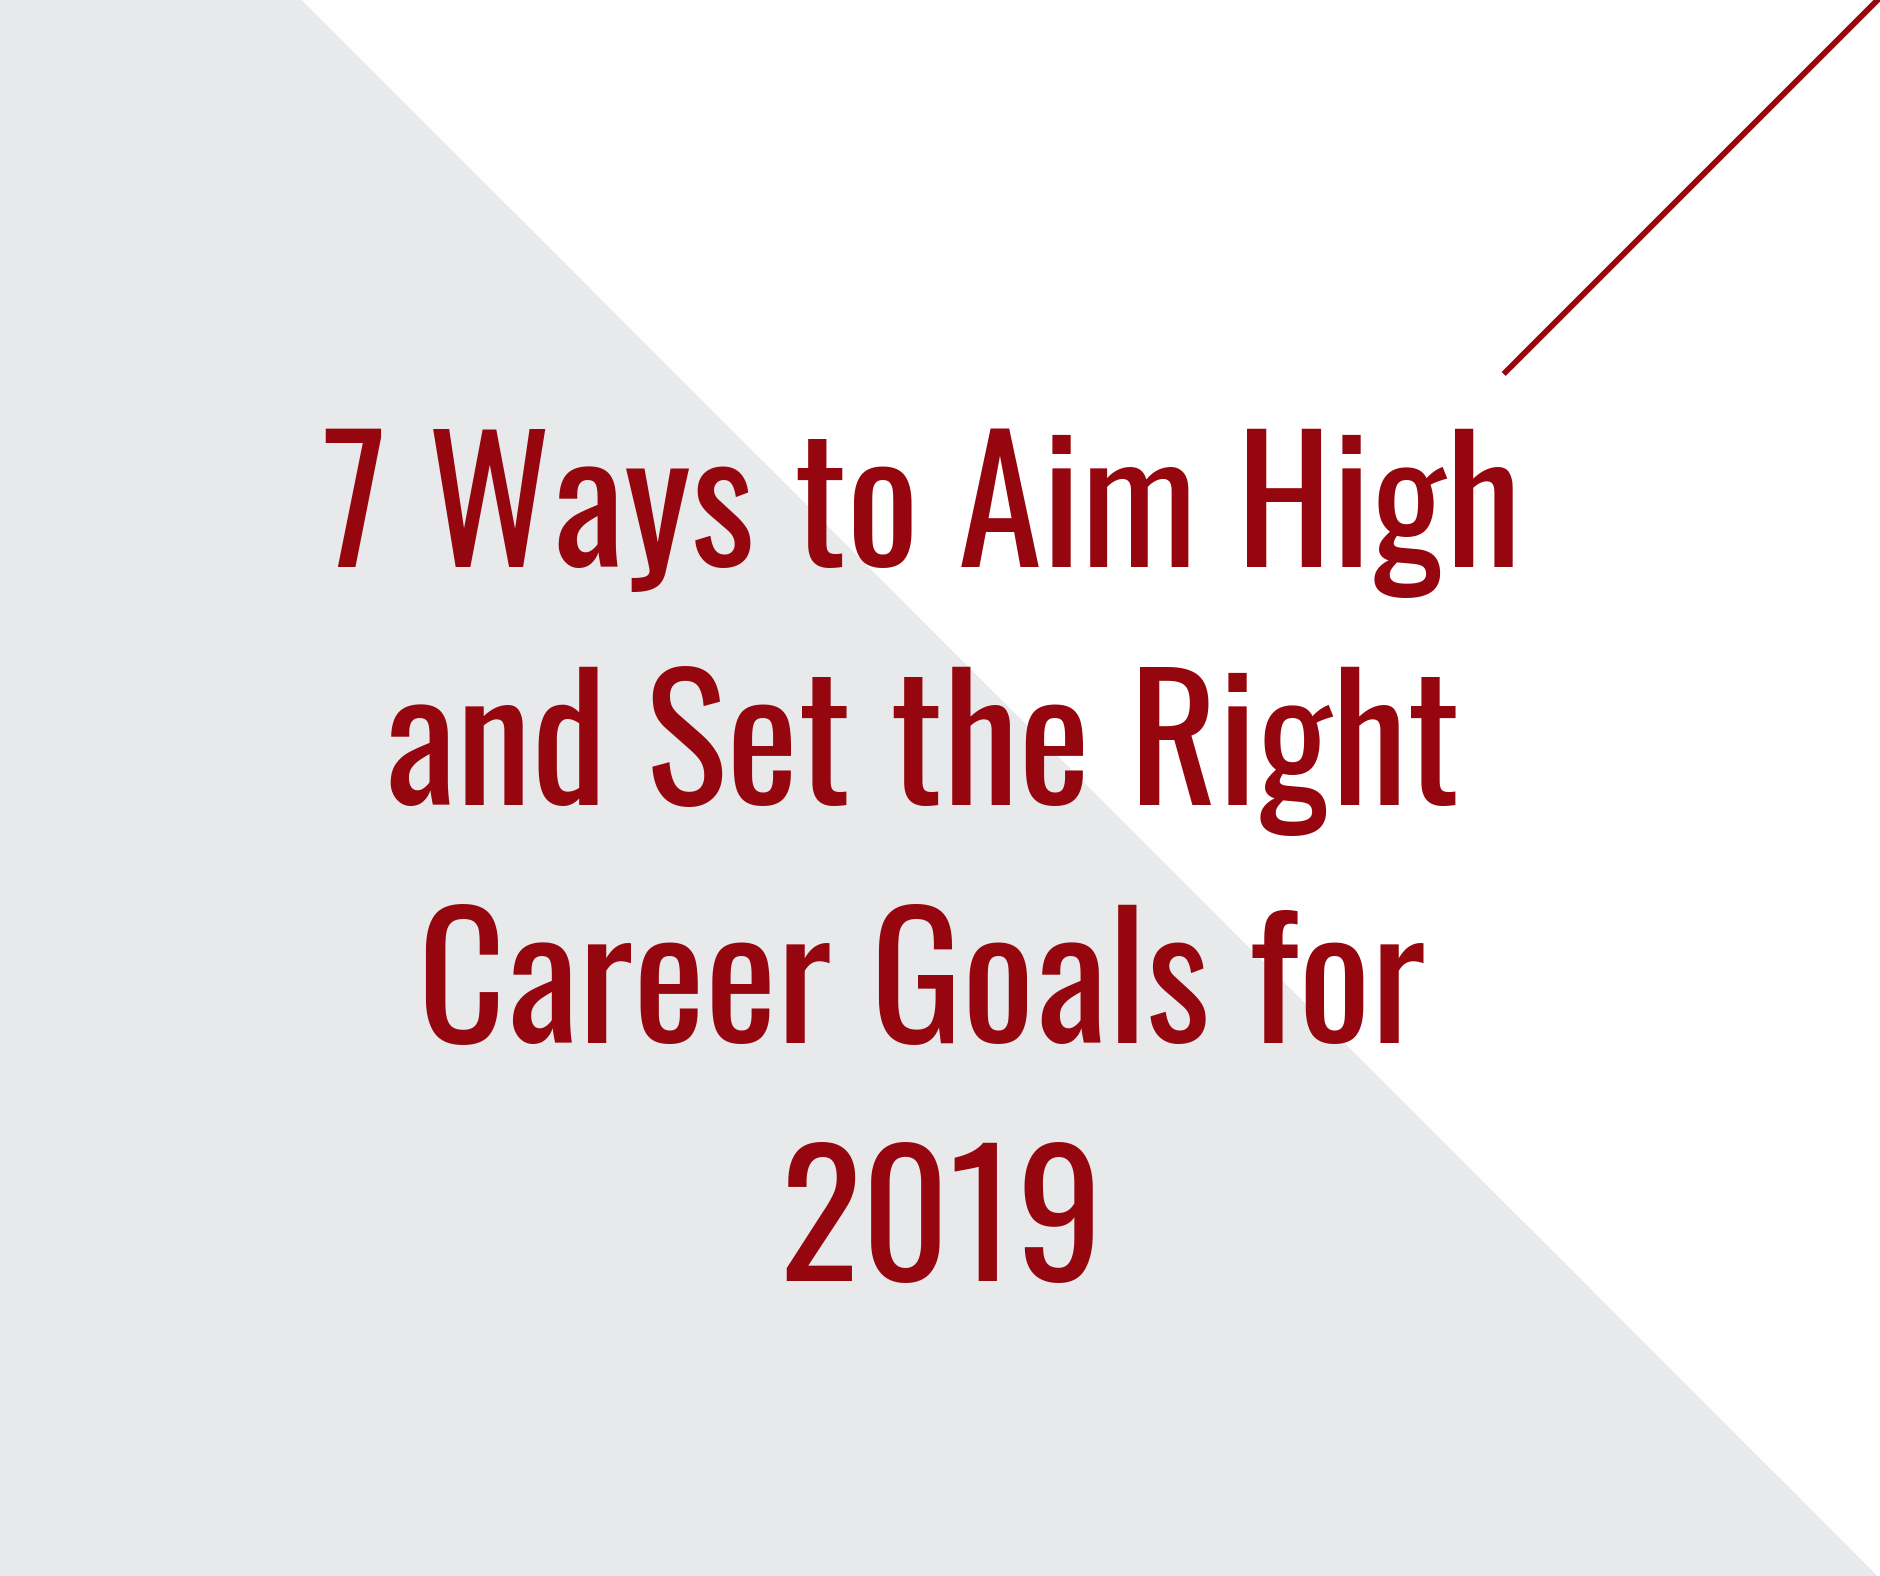 7 Ways to Aim High and Set the Right Career Goals for 2019